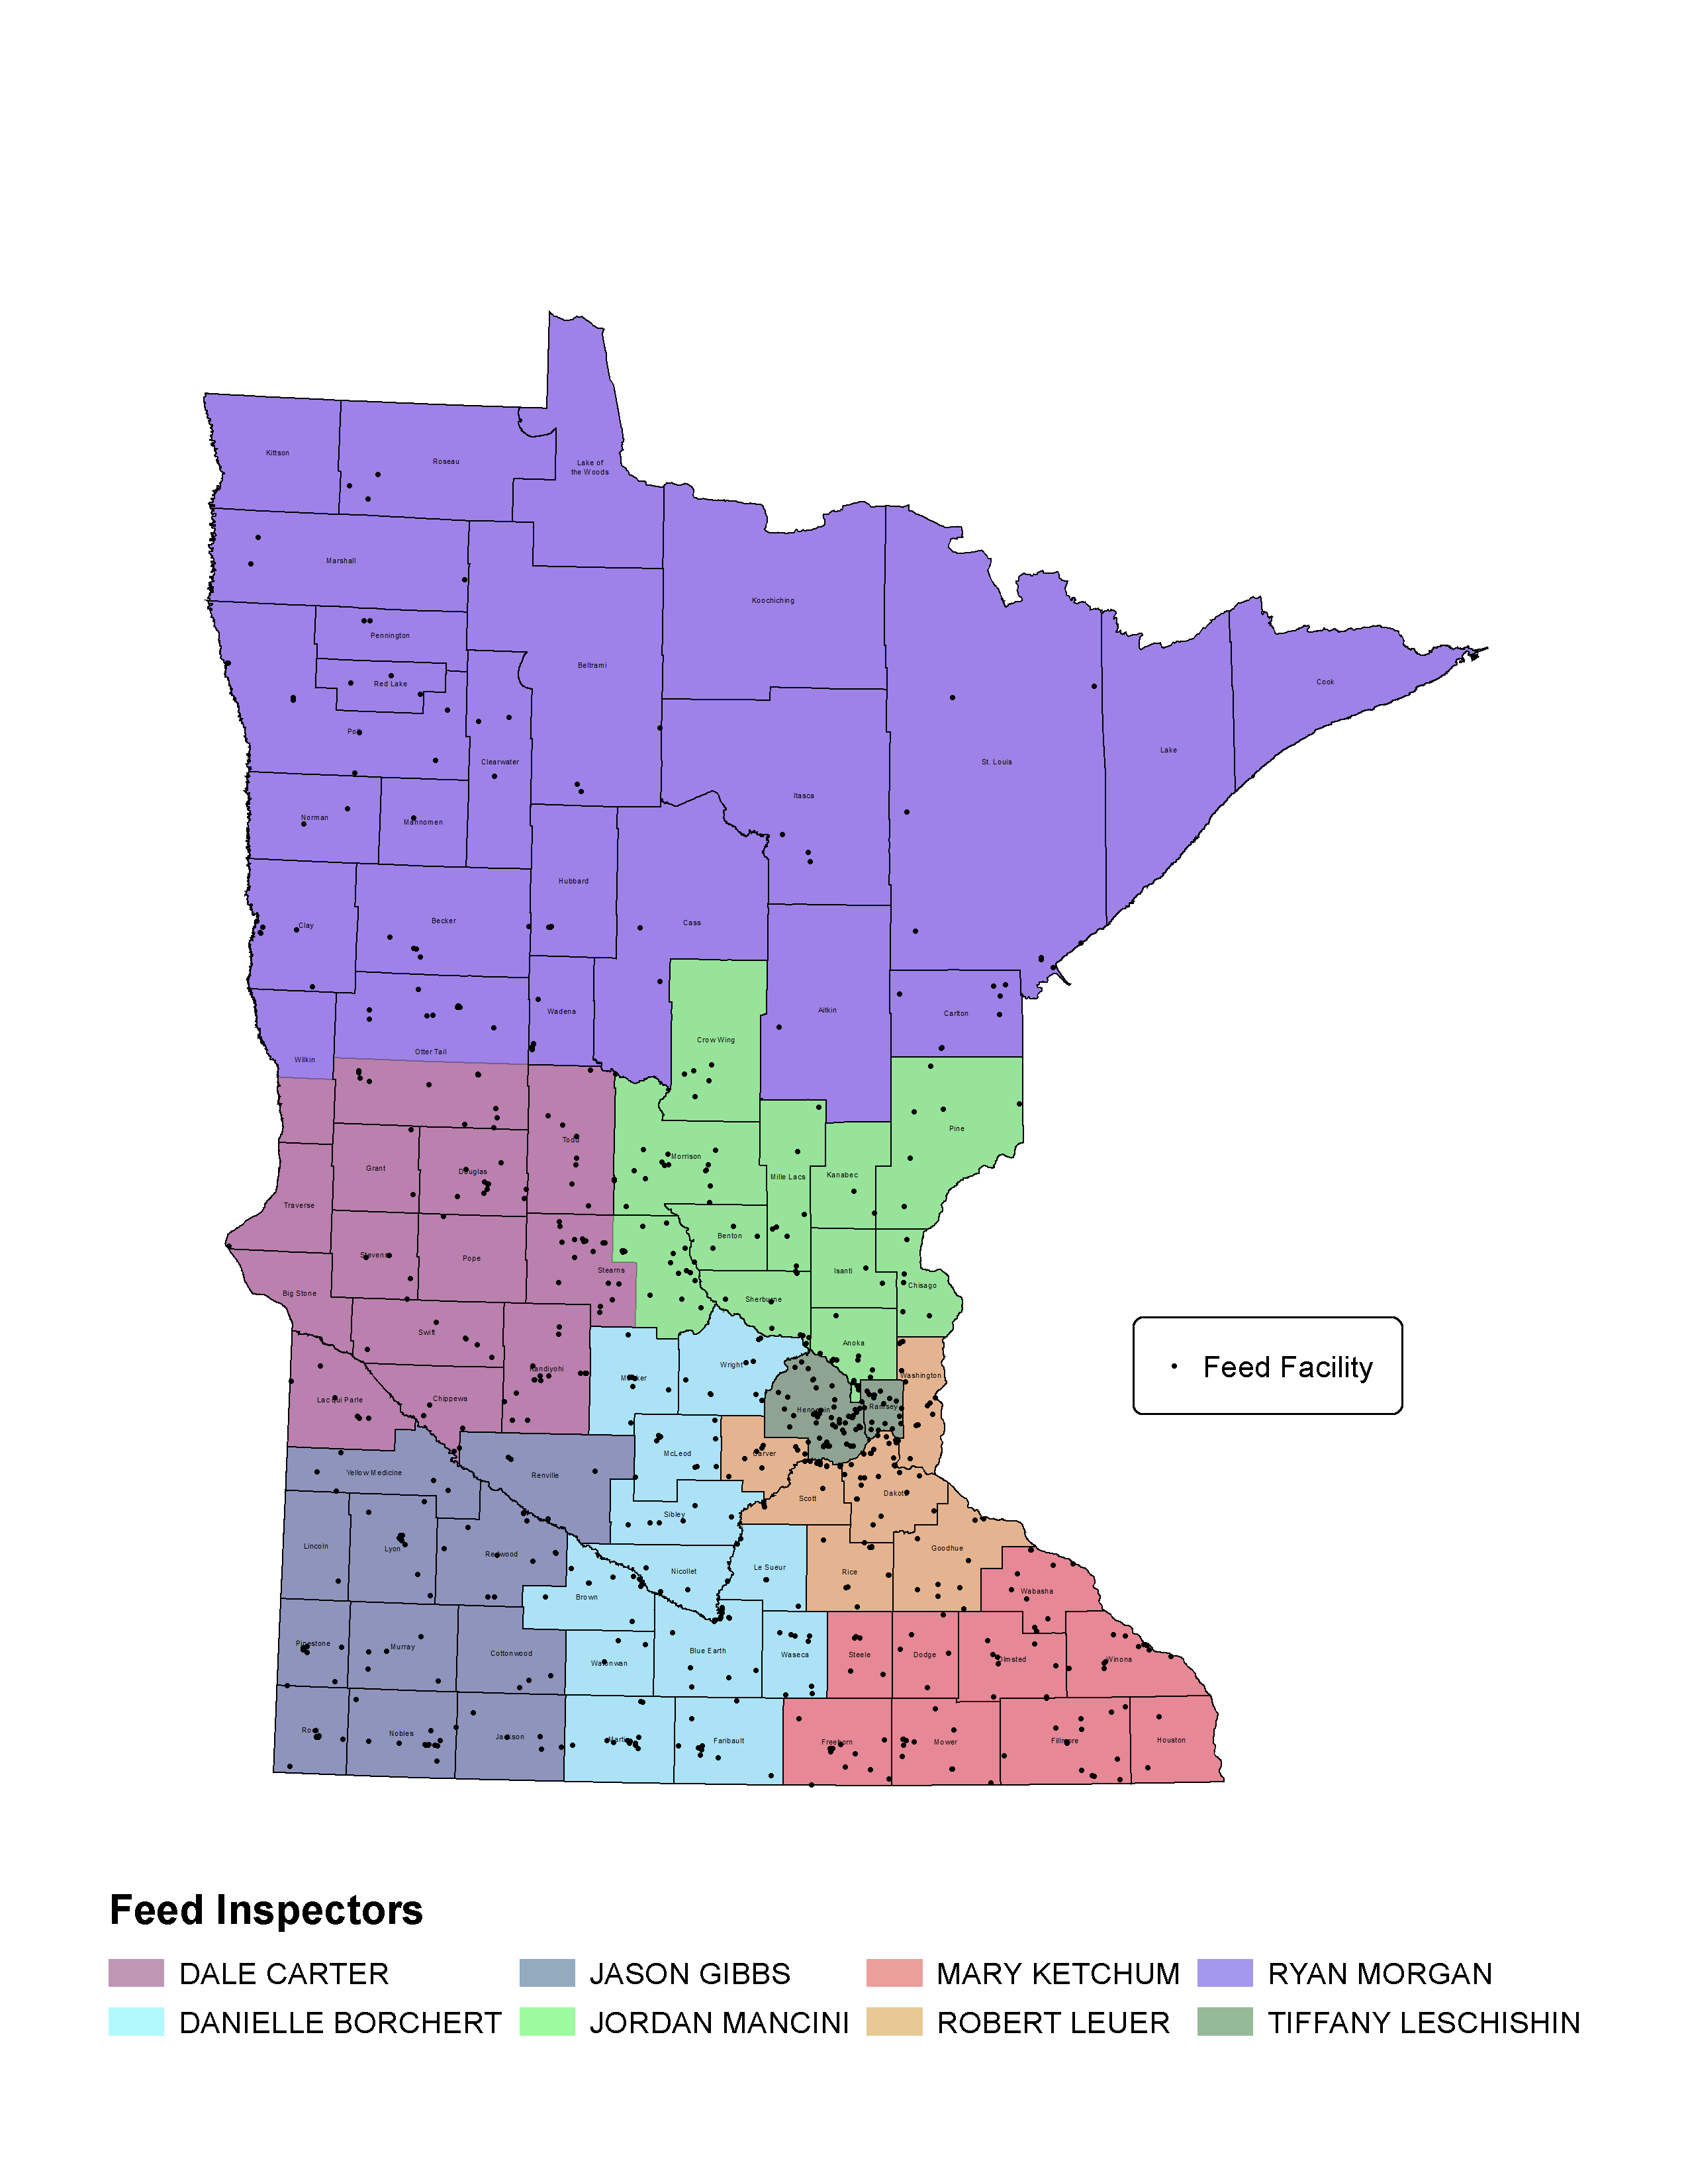 Minnesota county map showing feed inspector territories specified in the text on this page.